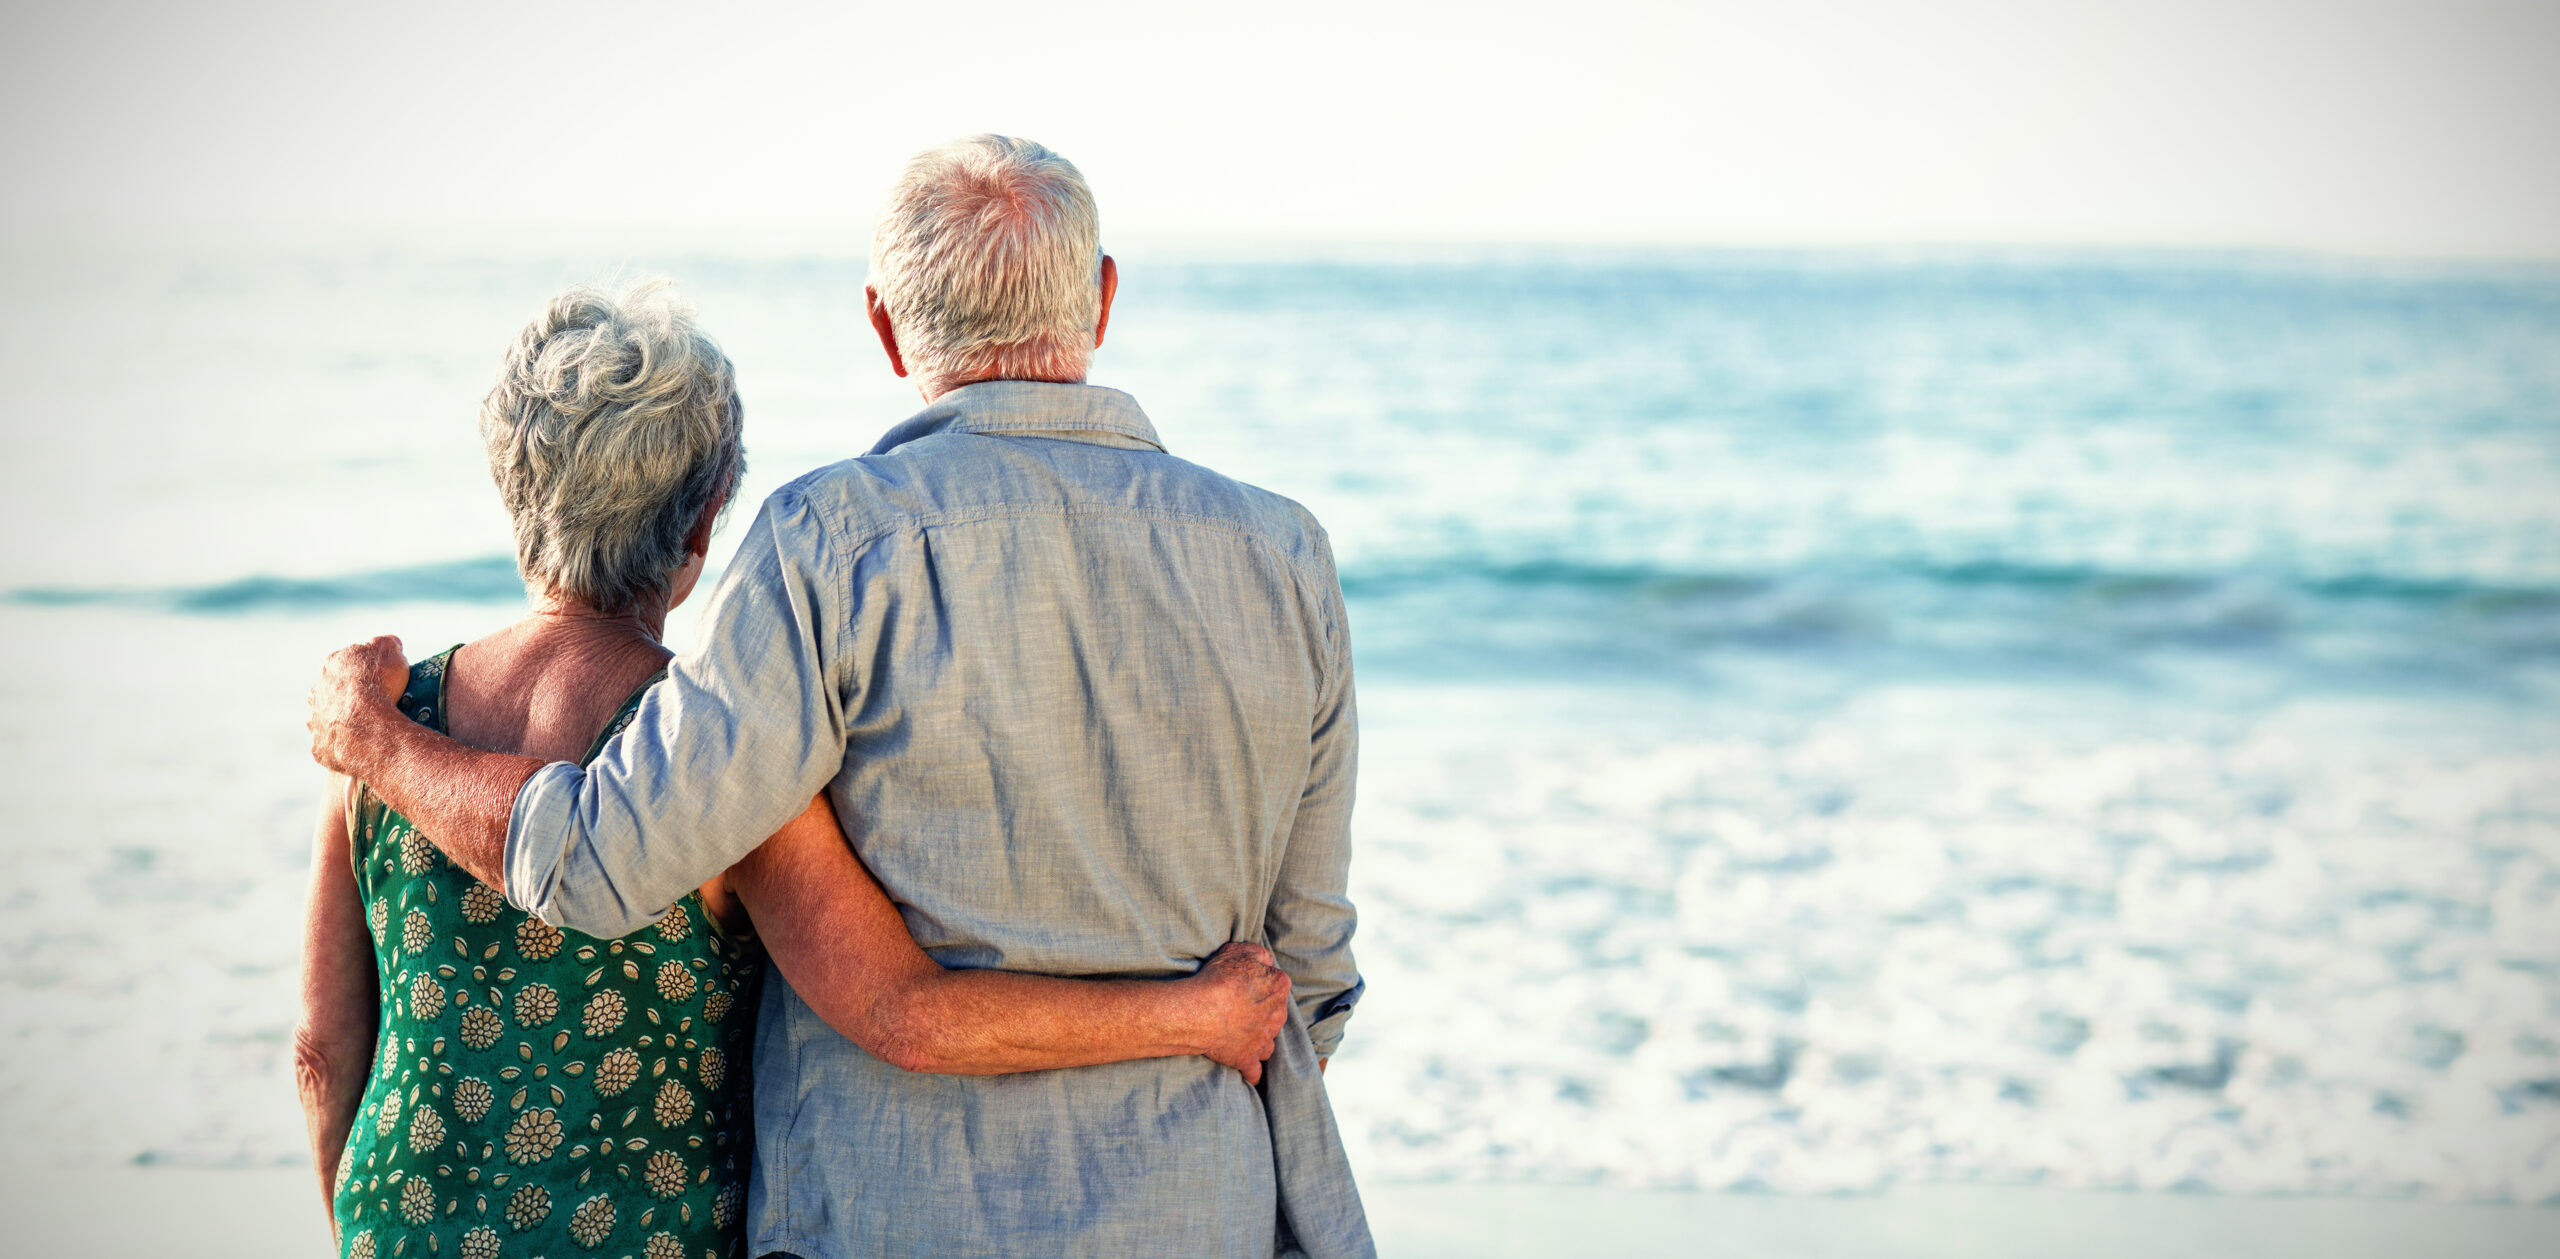 Where will you spend your Golden Years?